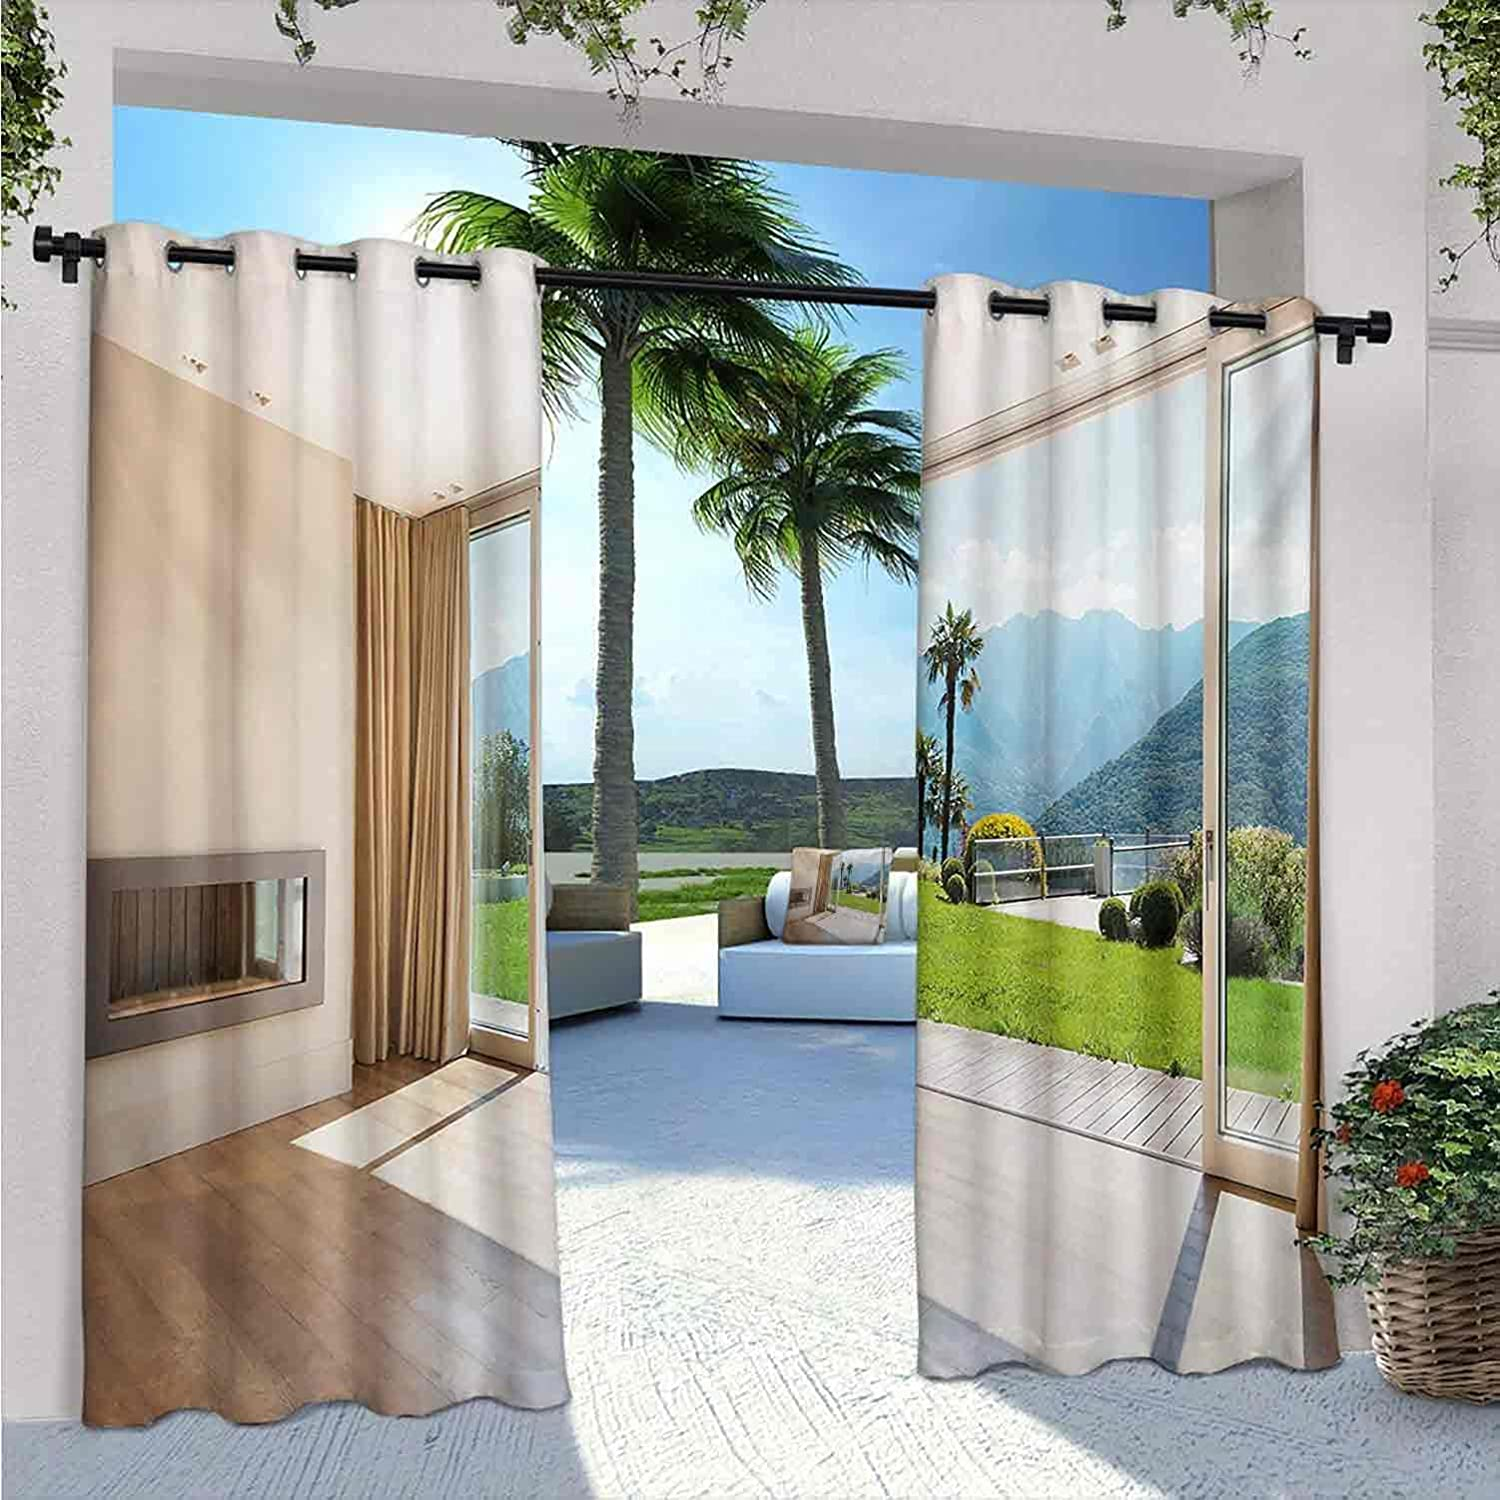 Modern Outdoor Curtains Houston Mall for Patio Scenic with Waterproof Room Fashion V